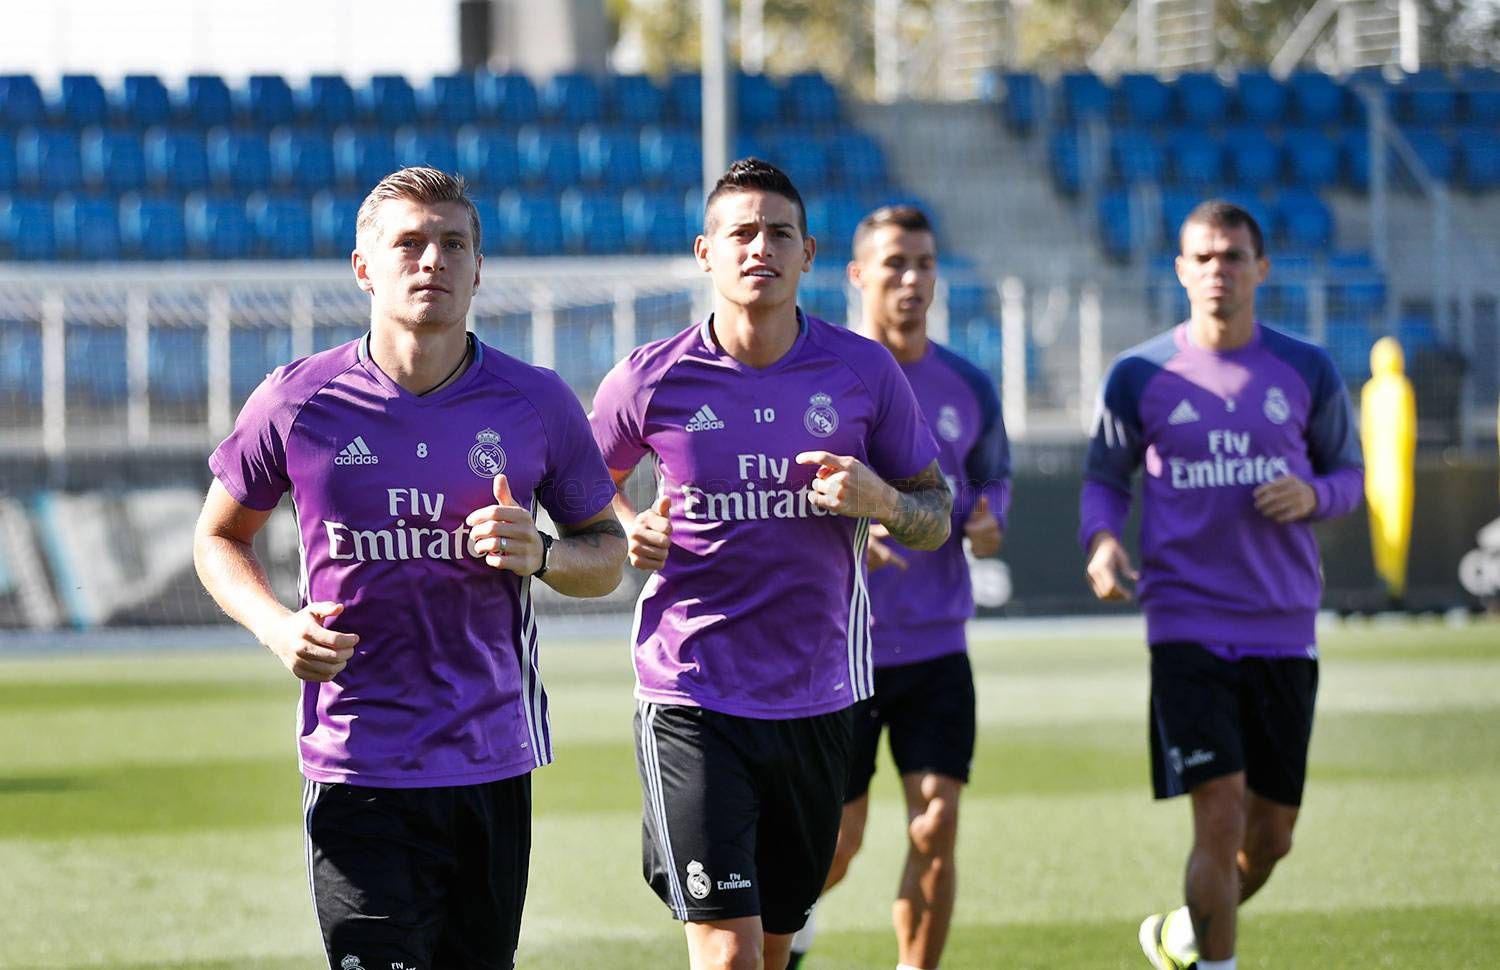 Real Madrid - Entrenamiento del Real Madrid - 22-09-2016